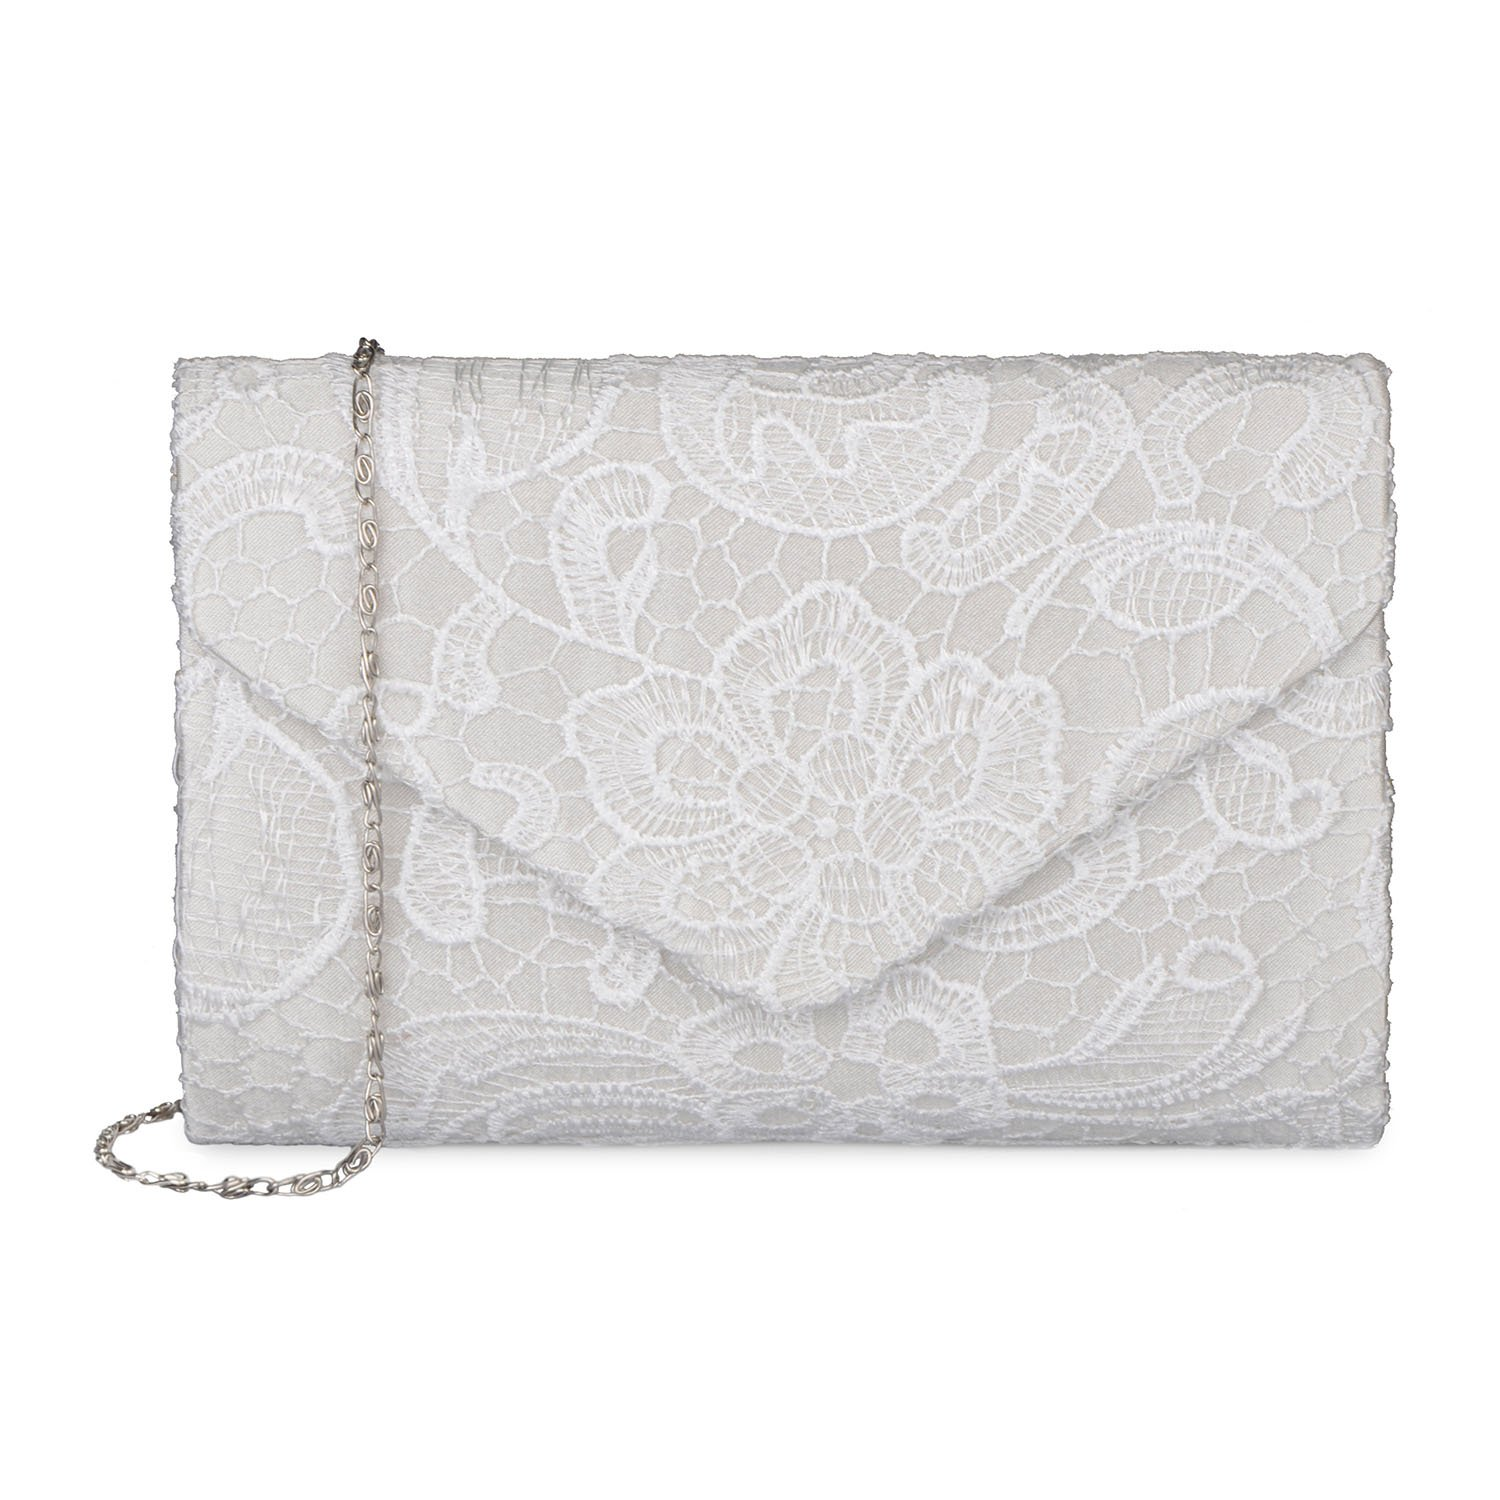 Baglamor Women's Elegant Floral Lace Envelope Clutch Evening Prom Handbag Purse 10477050